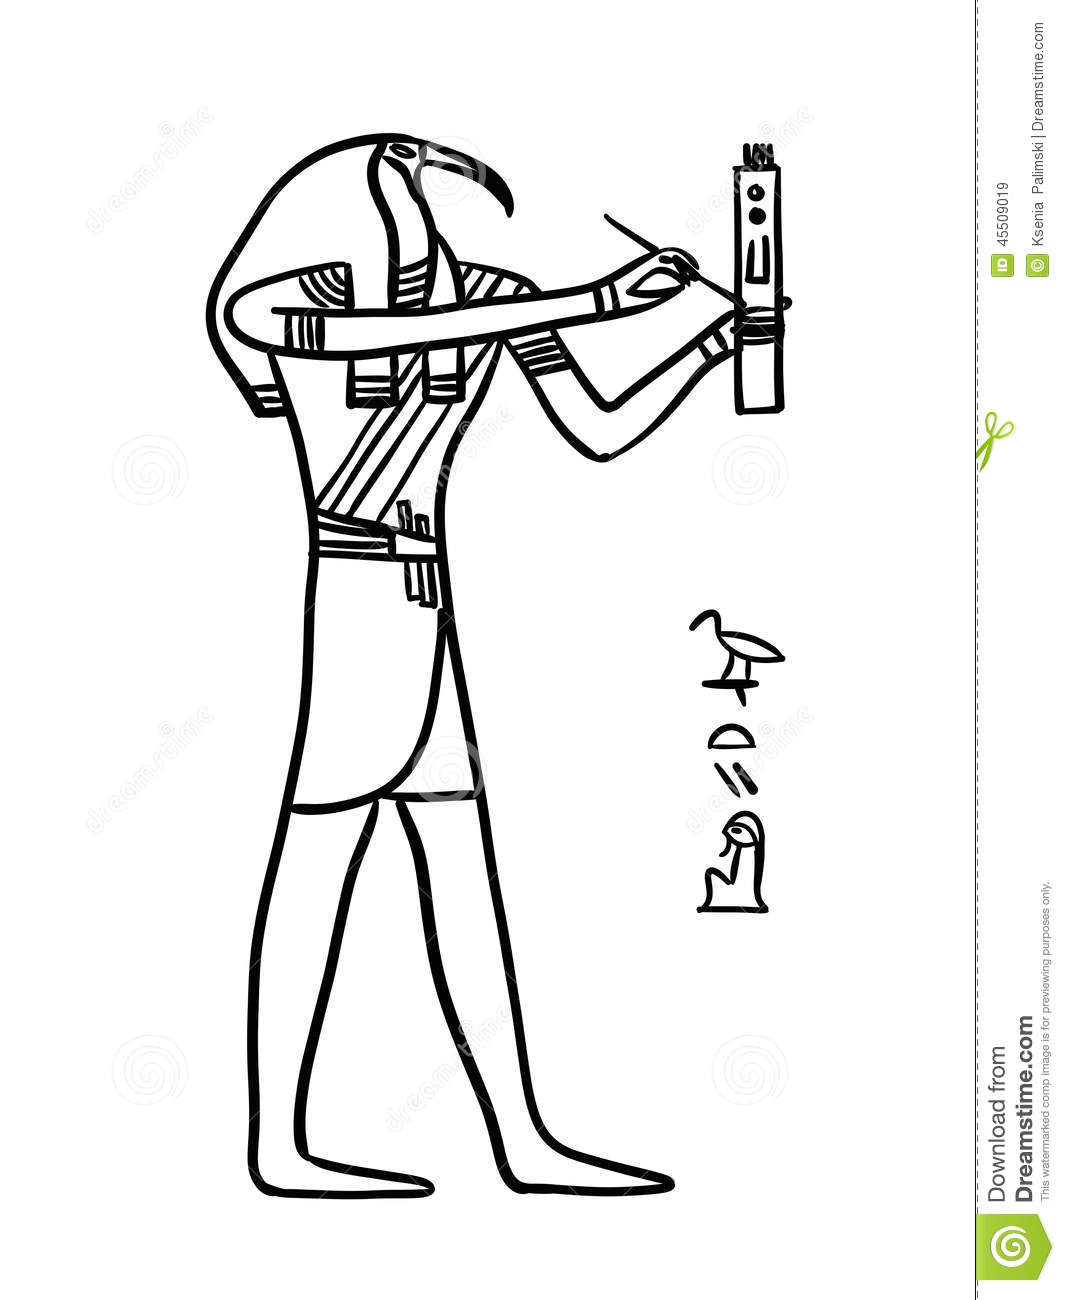 Thoth Egyptian God Stock Illustration